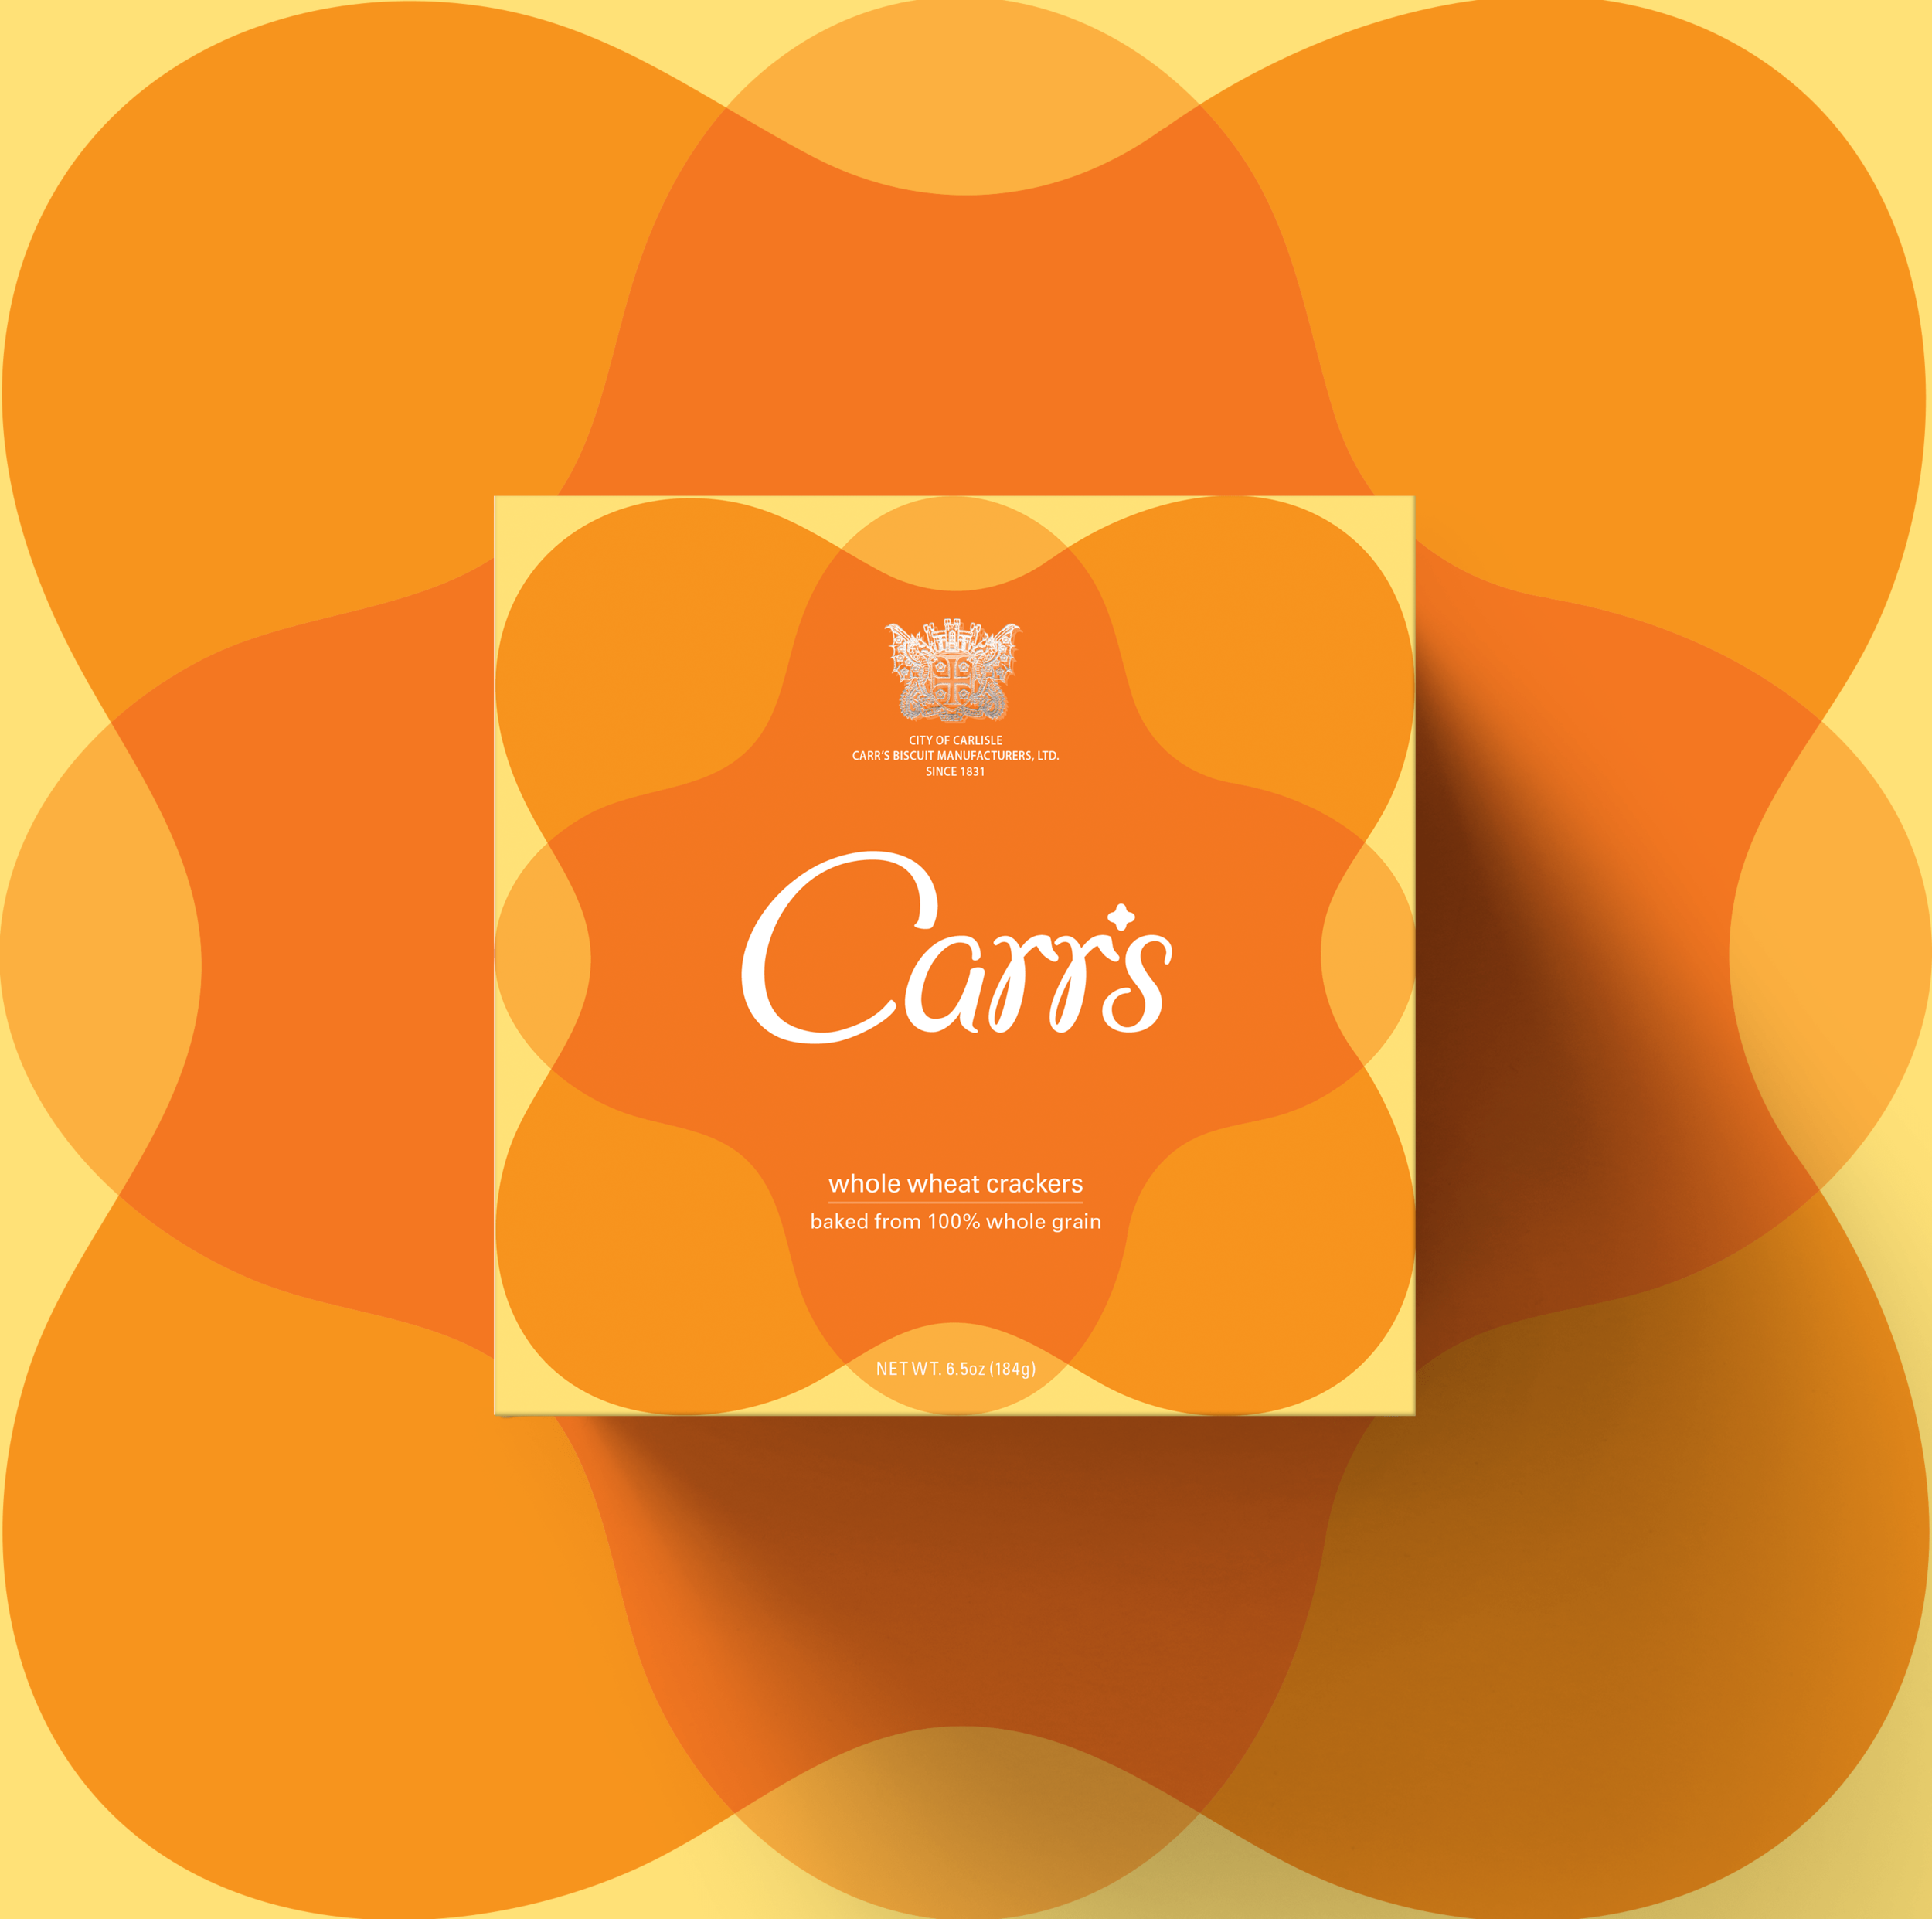 Redesign-Carr's-Biscuits-Redesign-wholewheat.png